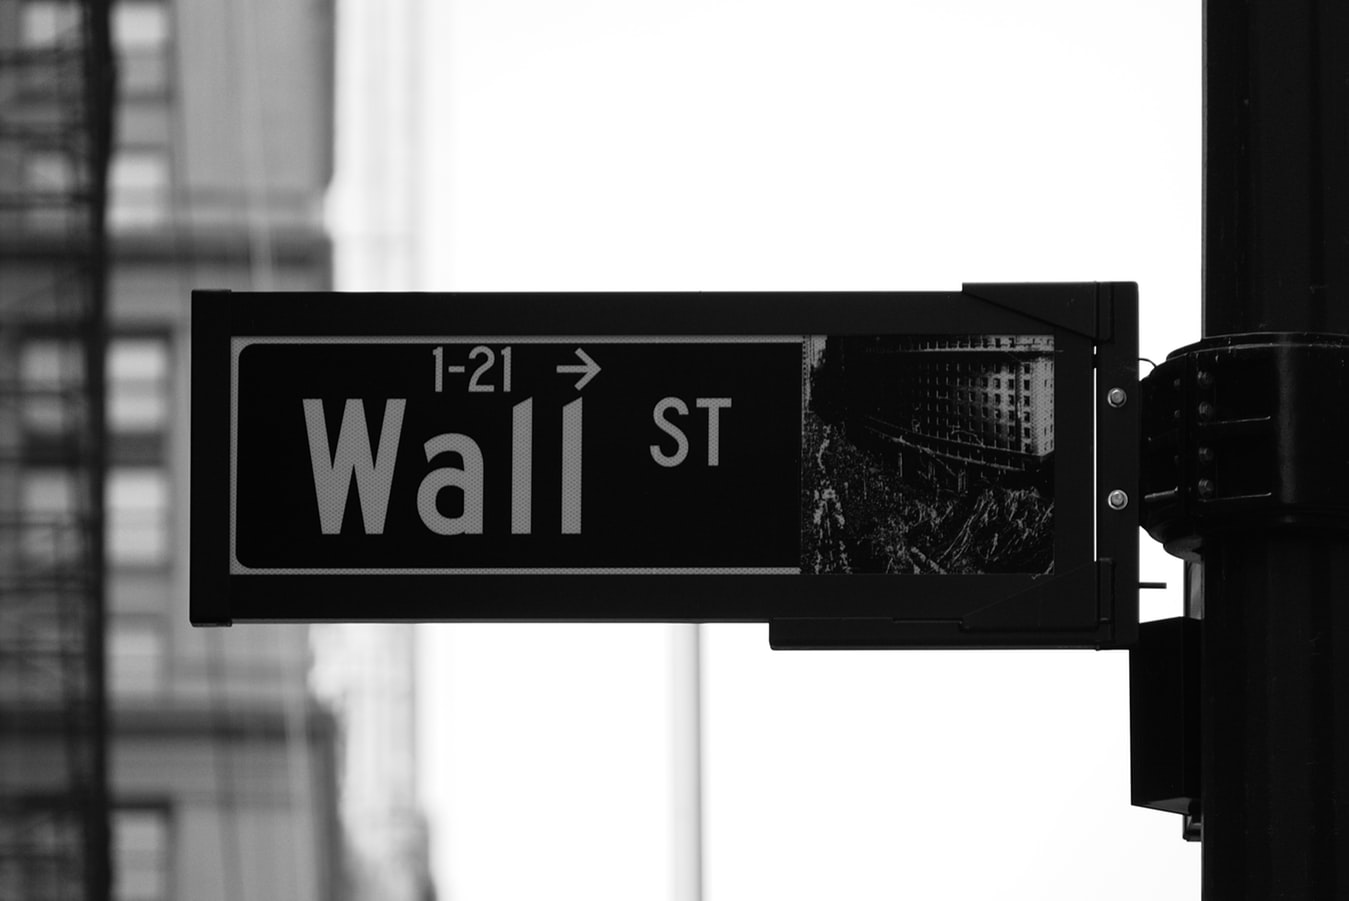 Wall Street sign black and white financial district